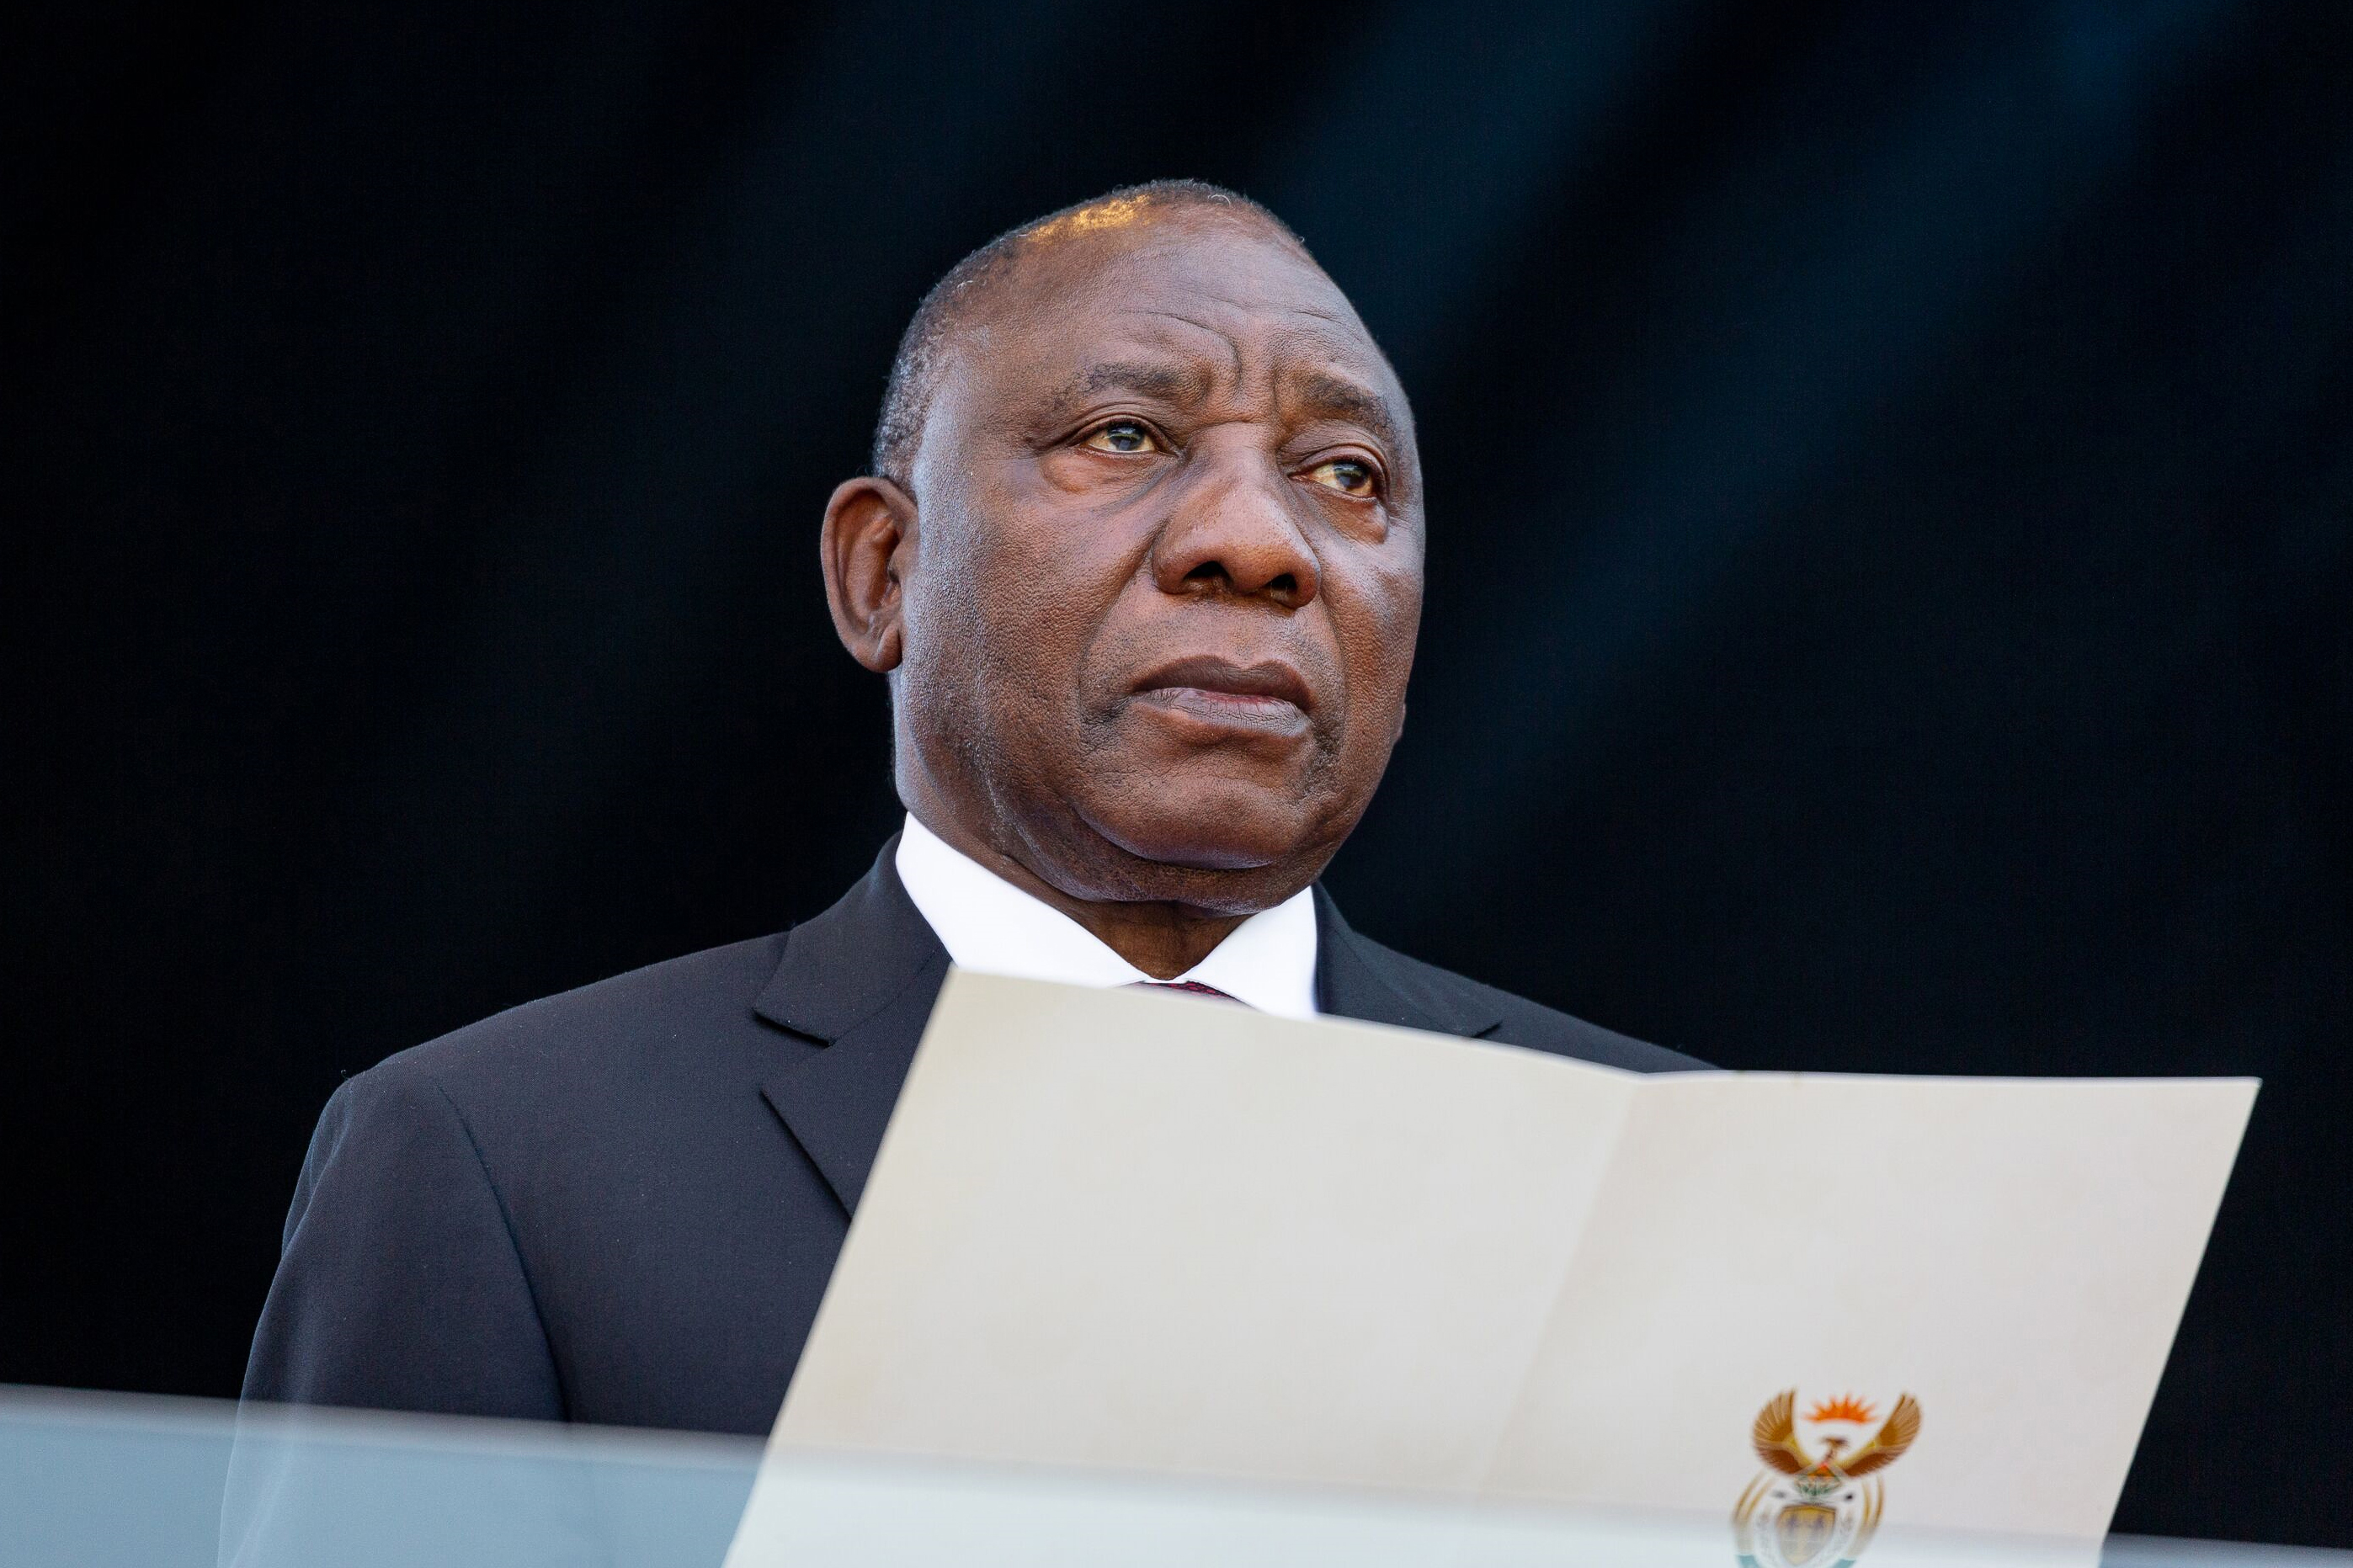 File: President Cyril Ramaphosa's lawyers ask the court to seal records submitted by the Public Protector in her Bosasa report.